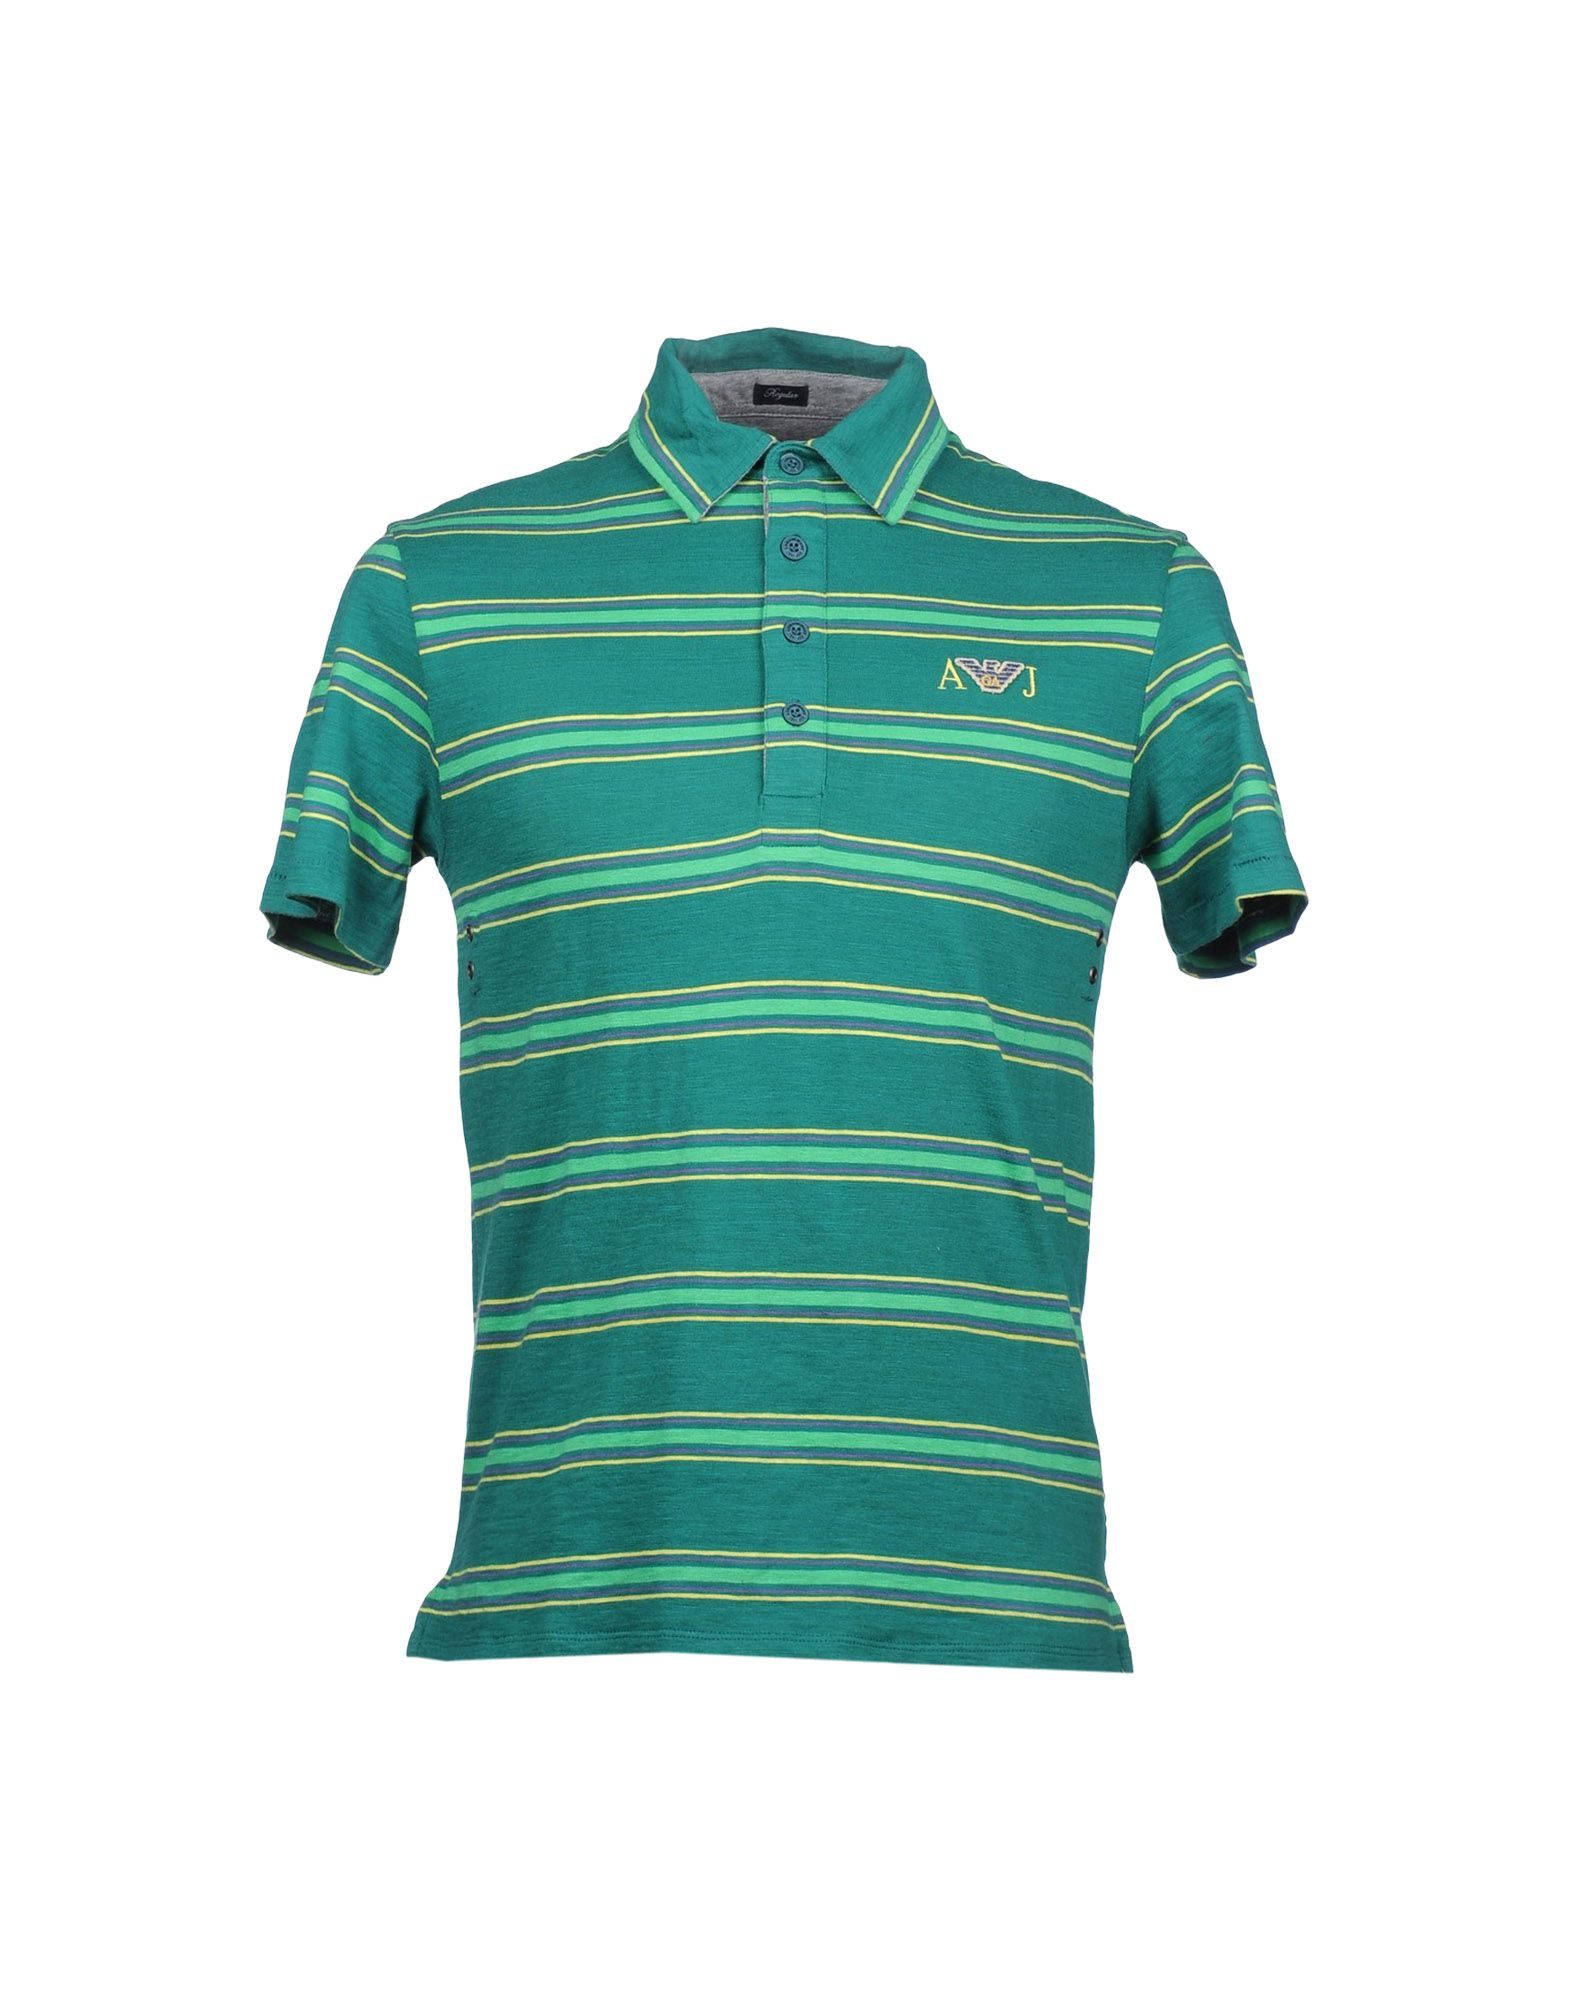 Armani jeans polo shirt in green for men emerald green Emerald green mens dress shirt